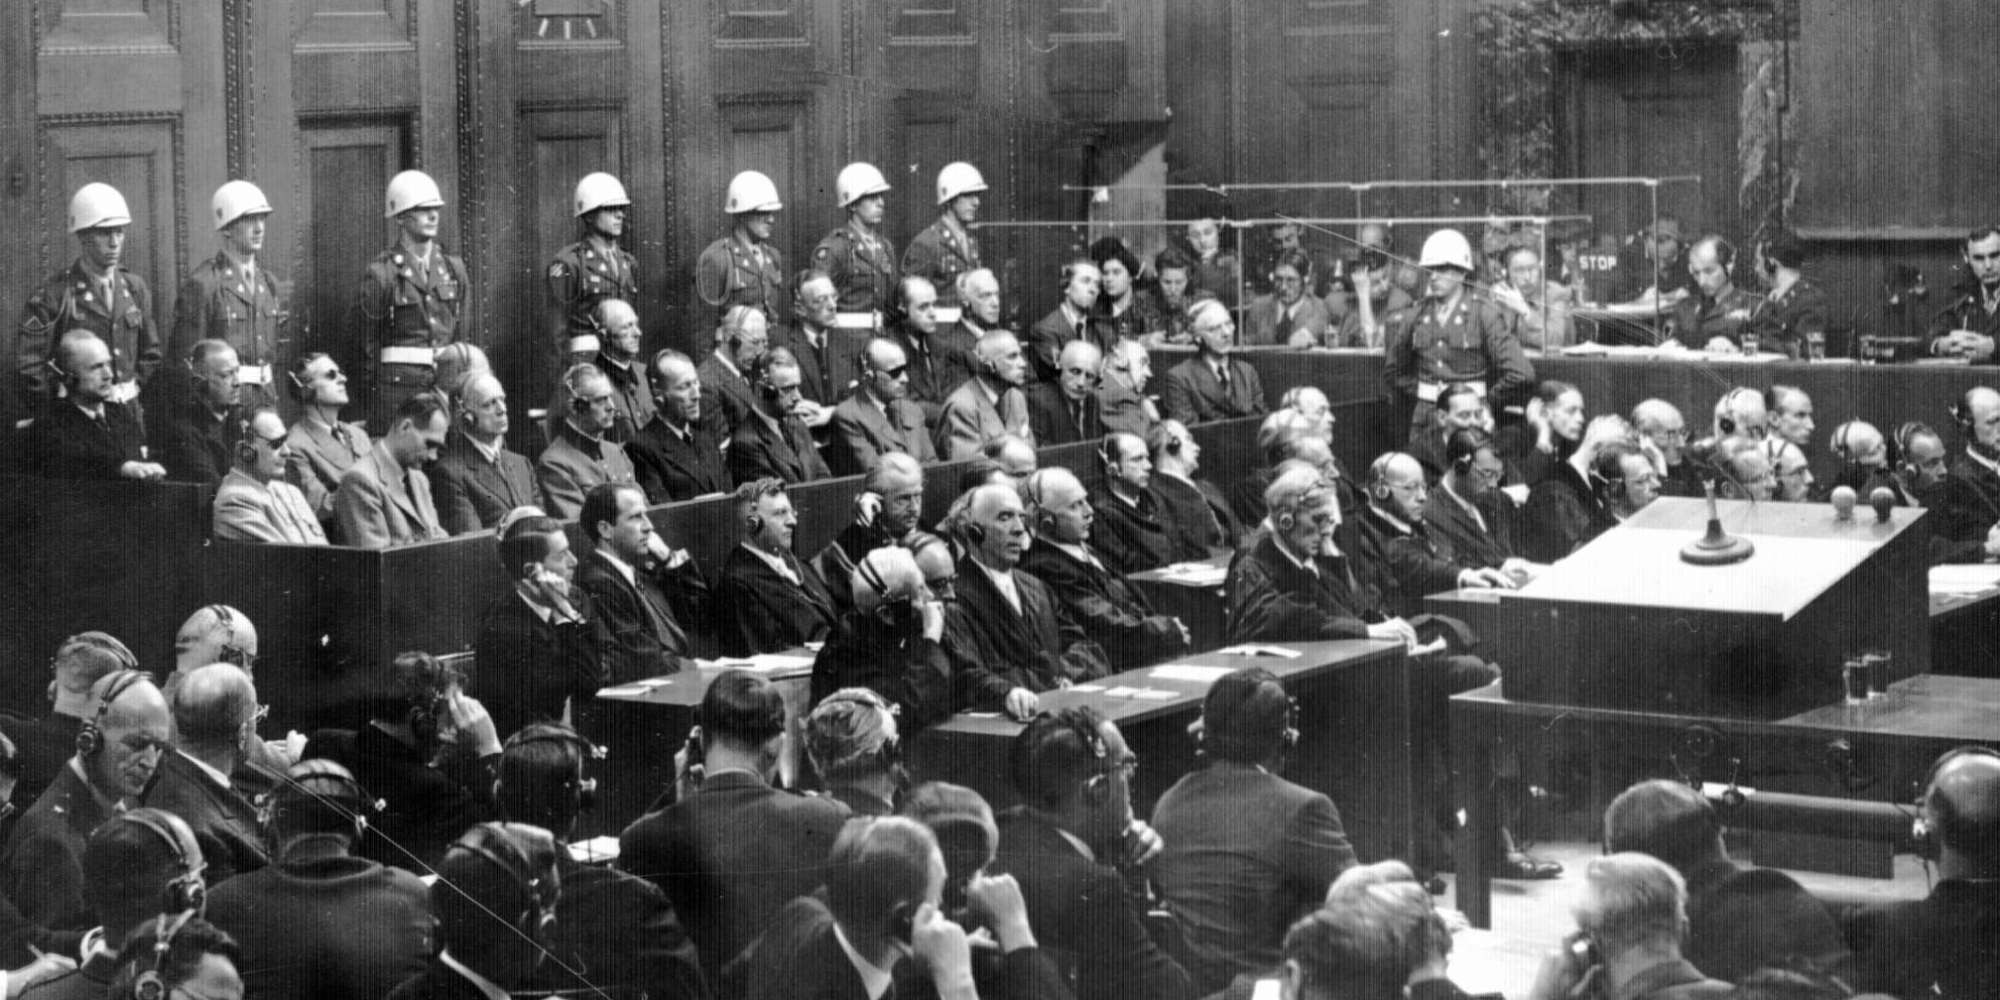 o-nuremberg-trials-facebook.jpg